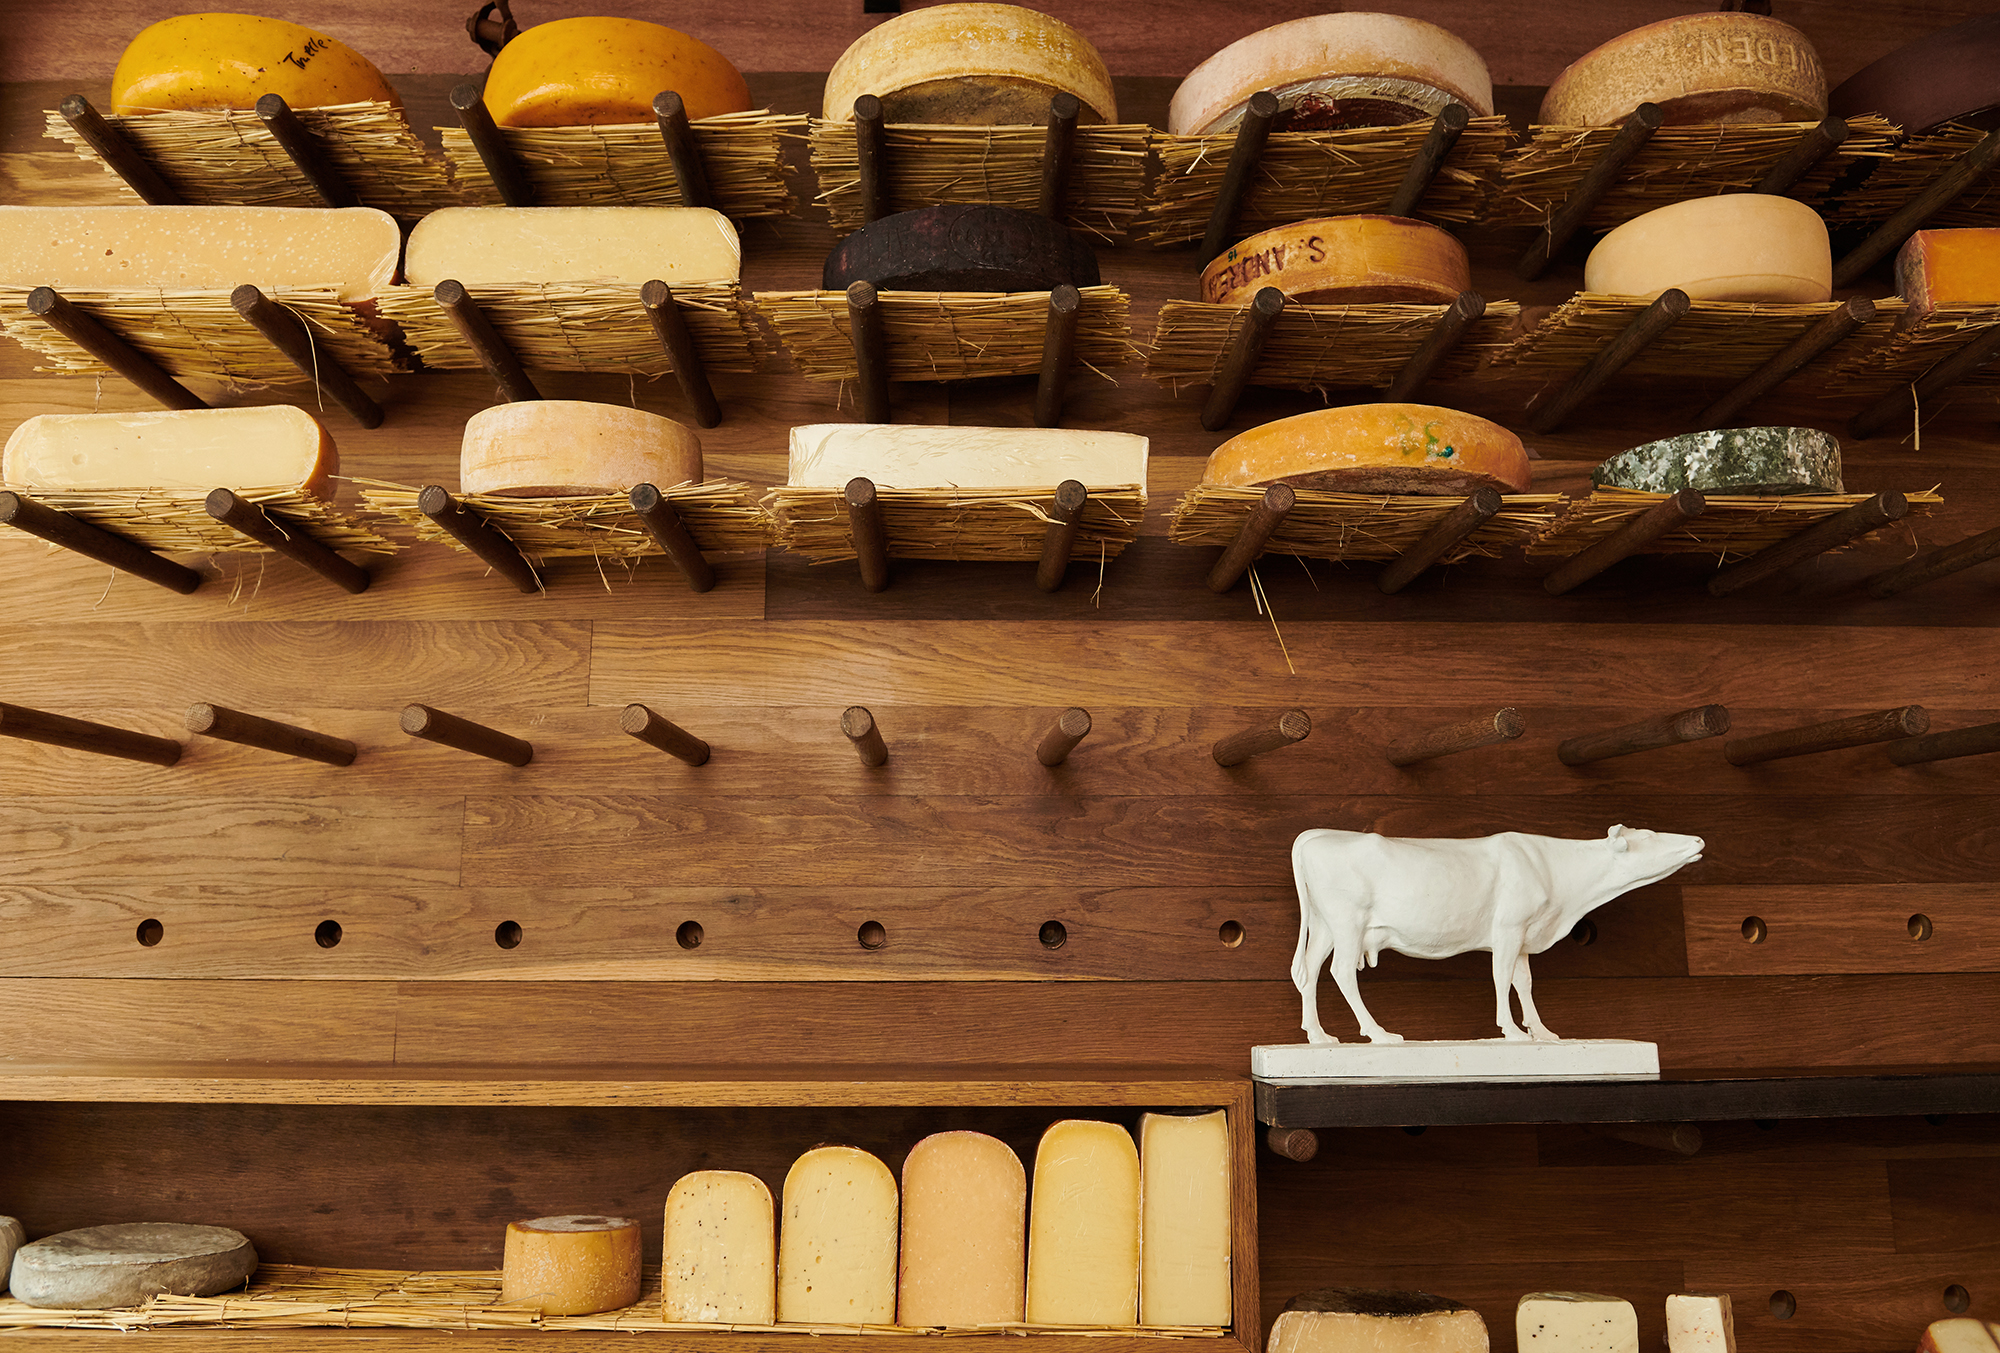 cheese shop interior by London photographer Holly Pickering